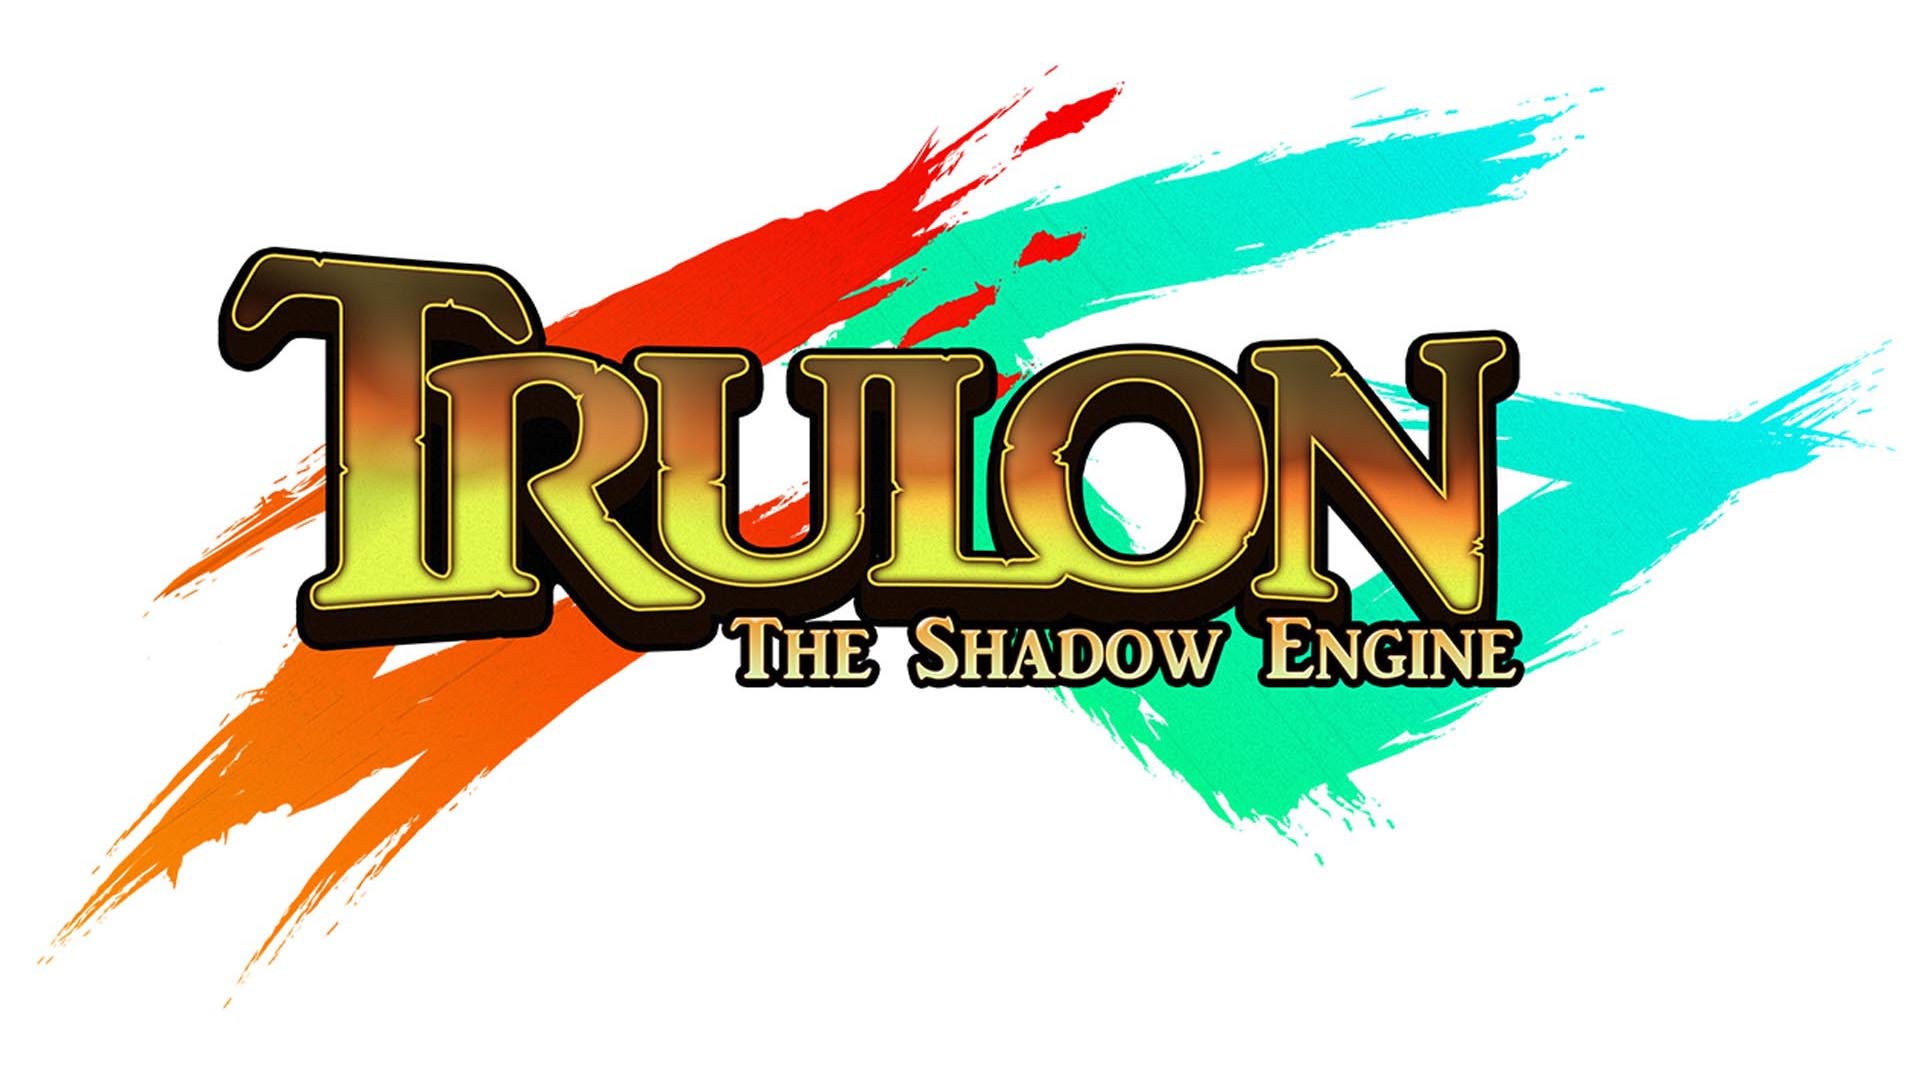 Trulon: The Shadow Engine – Das Steampunk-Rollenspiel verzaubert ab heute die Playstation 4